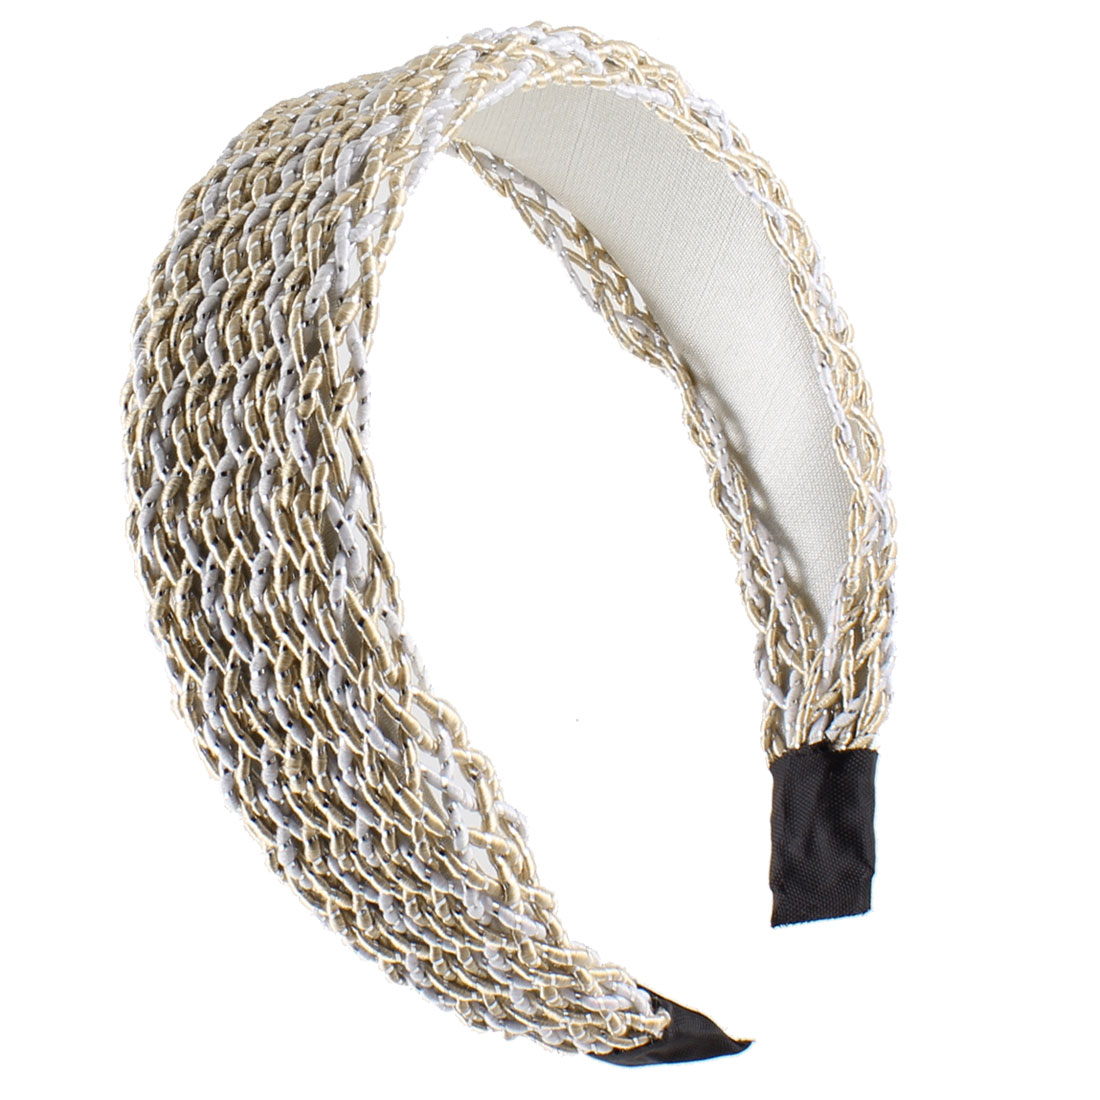 Lady Tinsel Detail Knitted Nylon Plastic Headband Hair Hoop Beige White